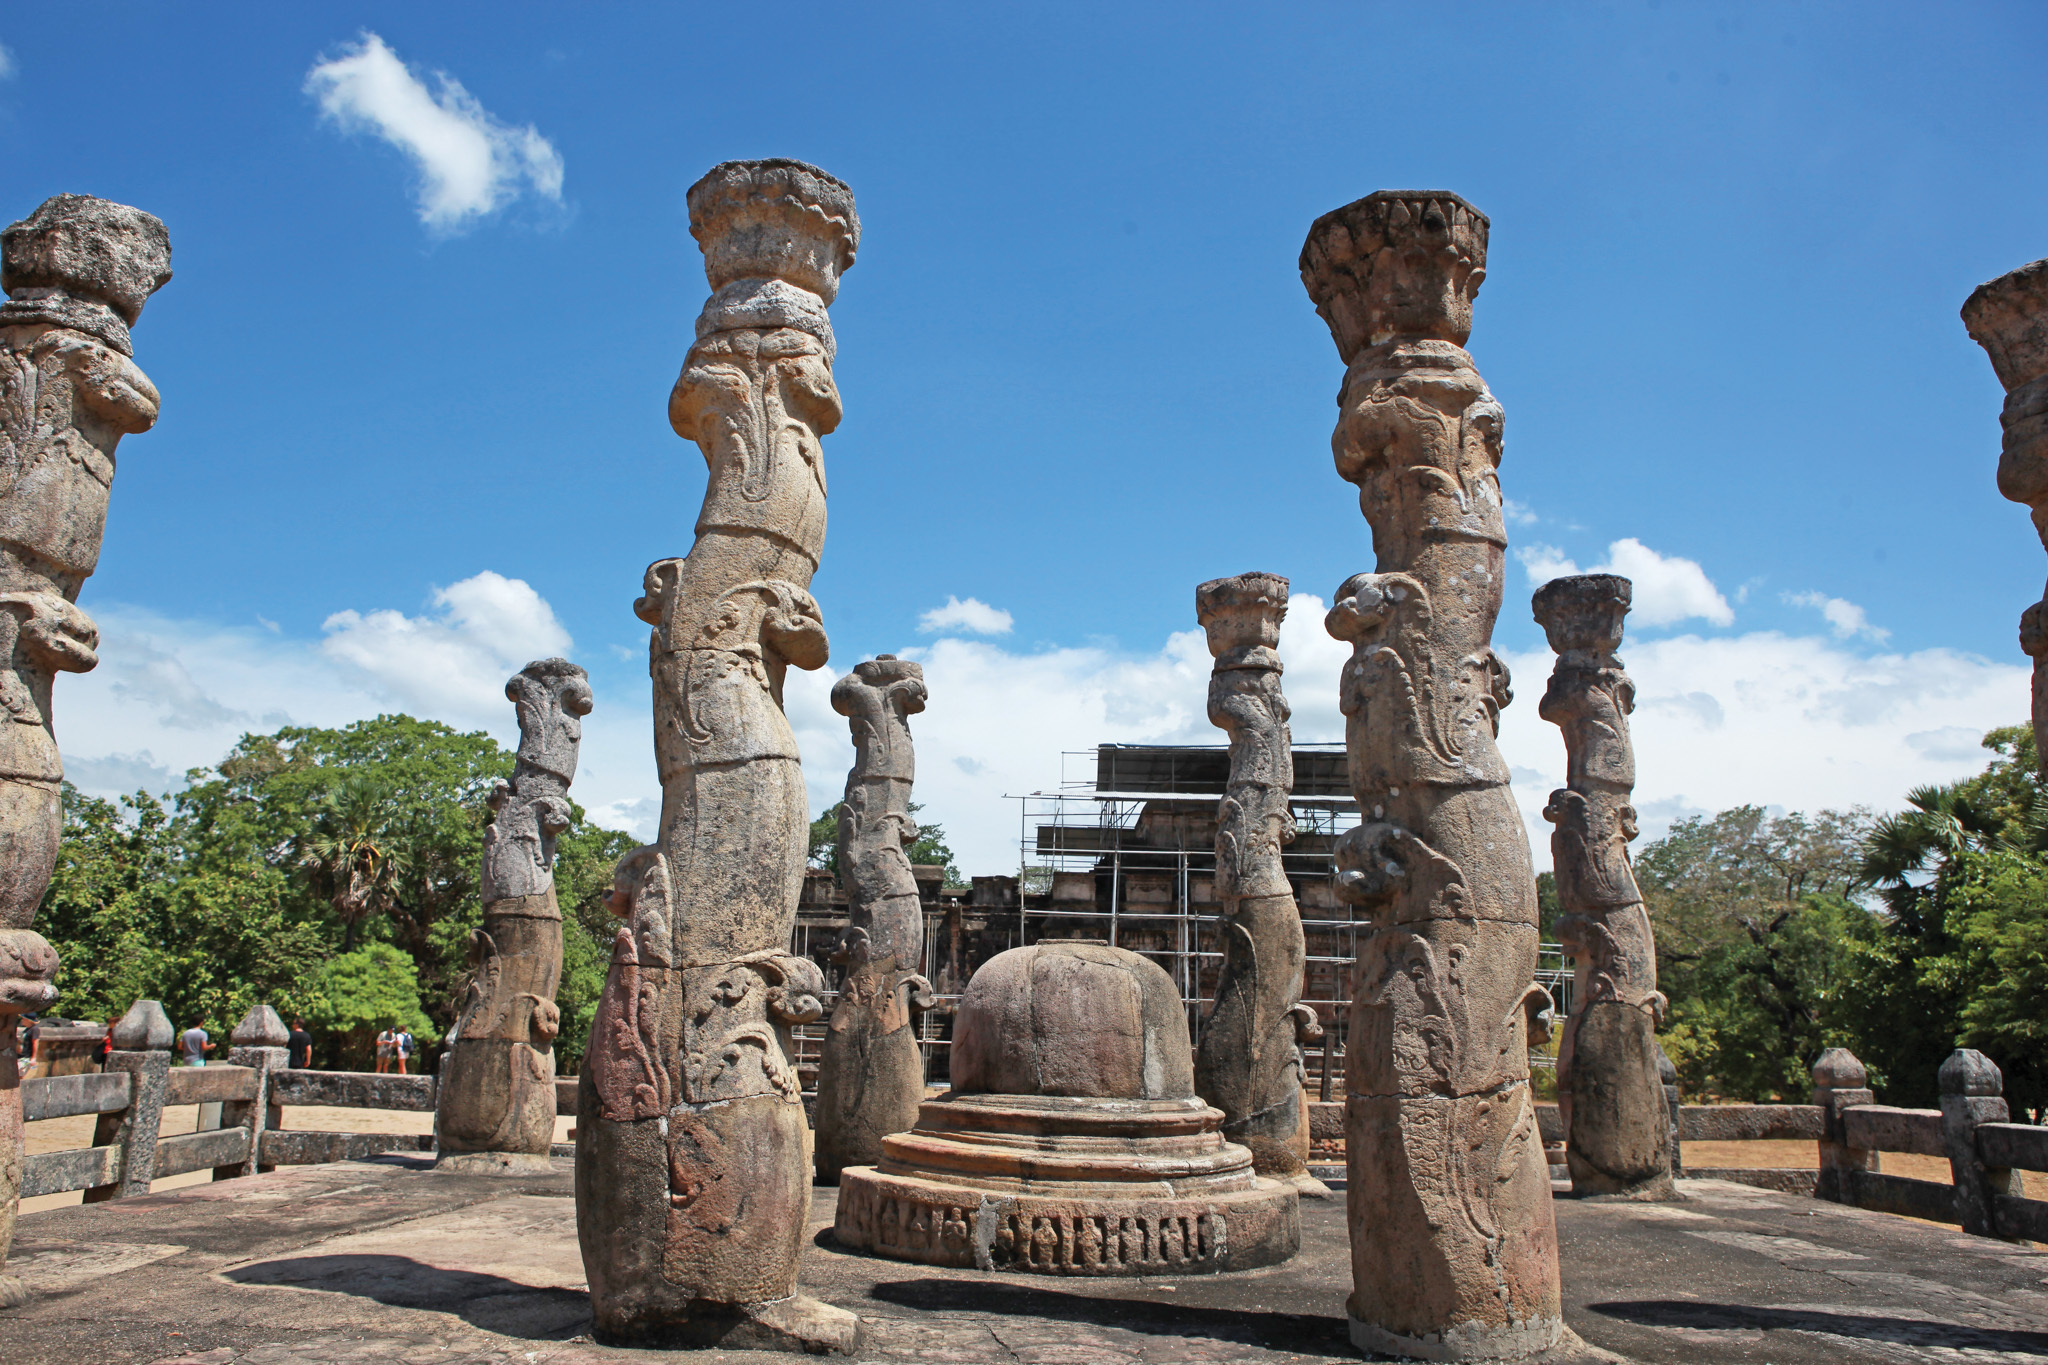 JOURNEY BACK IN TIME AS YOU VISIT THE HISTORICAL CITIES OF ANURADHAPURA AND POLONNARUWA